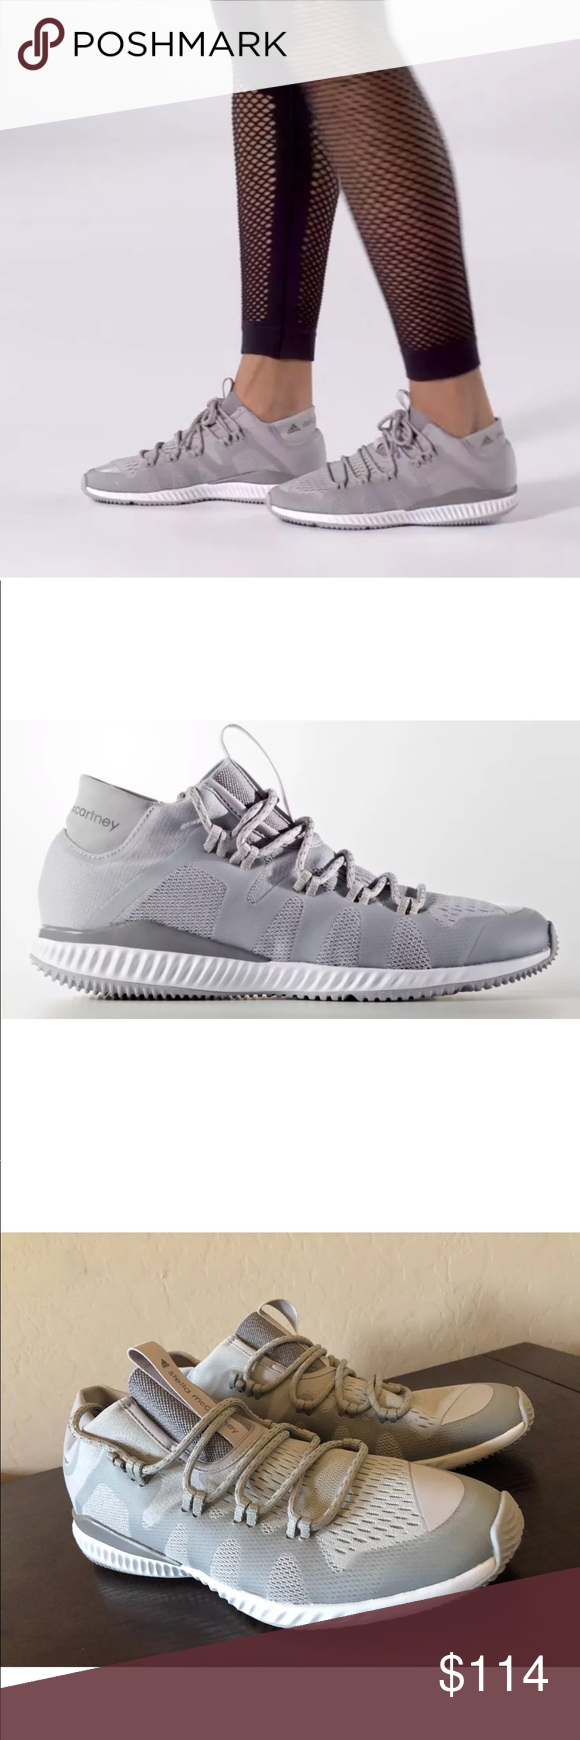 019dc1f48efb8 Women s Adidas By Stella Mccartney Crazytrain ADIDAS CRAZYTRAIN BOUNCE MID  SHOES WOMEN S SIZE 8 US COLOR  Universe   Mystery   Cloud White Push harder  and ...